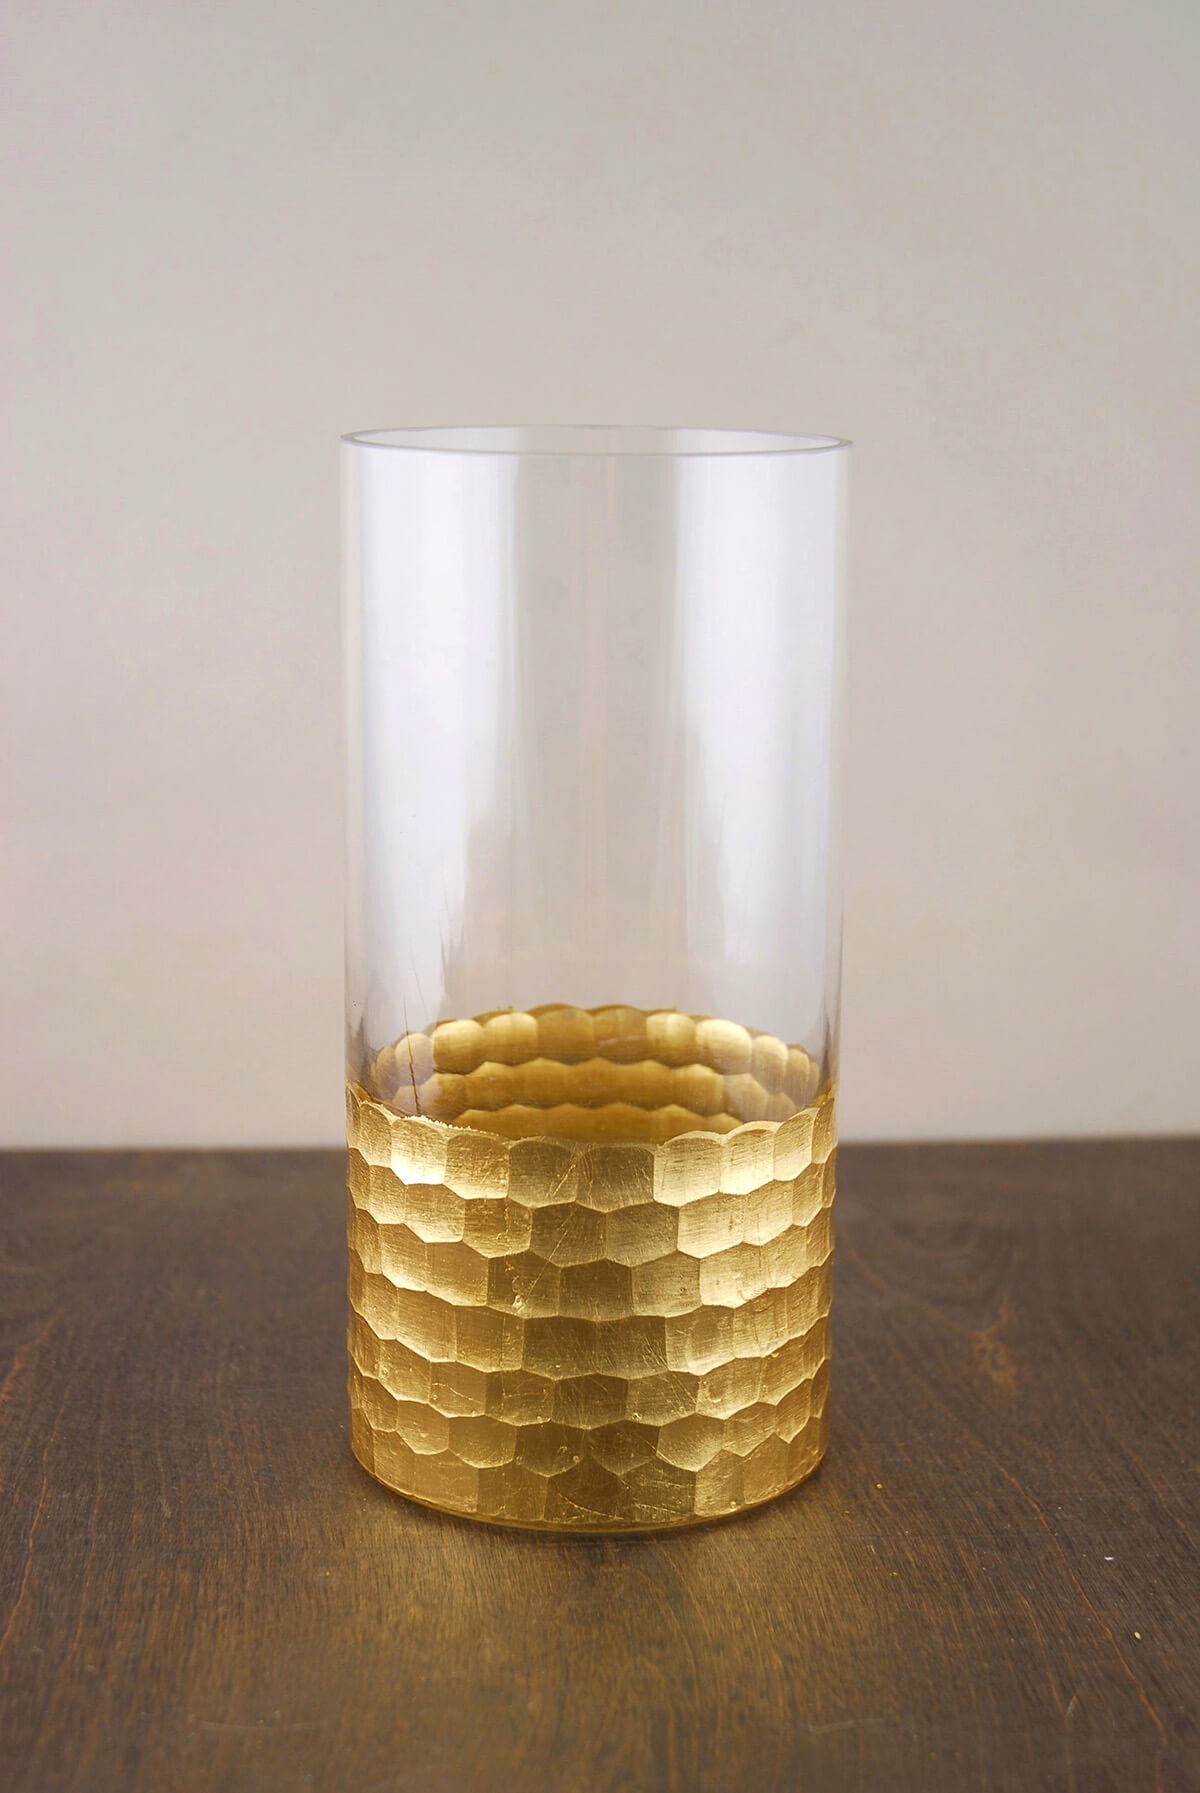 gold honeycomb cylinder vase 8 x 4. Black Bedroom Furniture Sets. Home Design Ideas